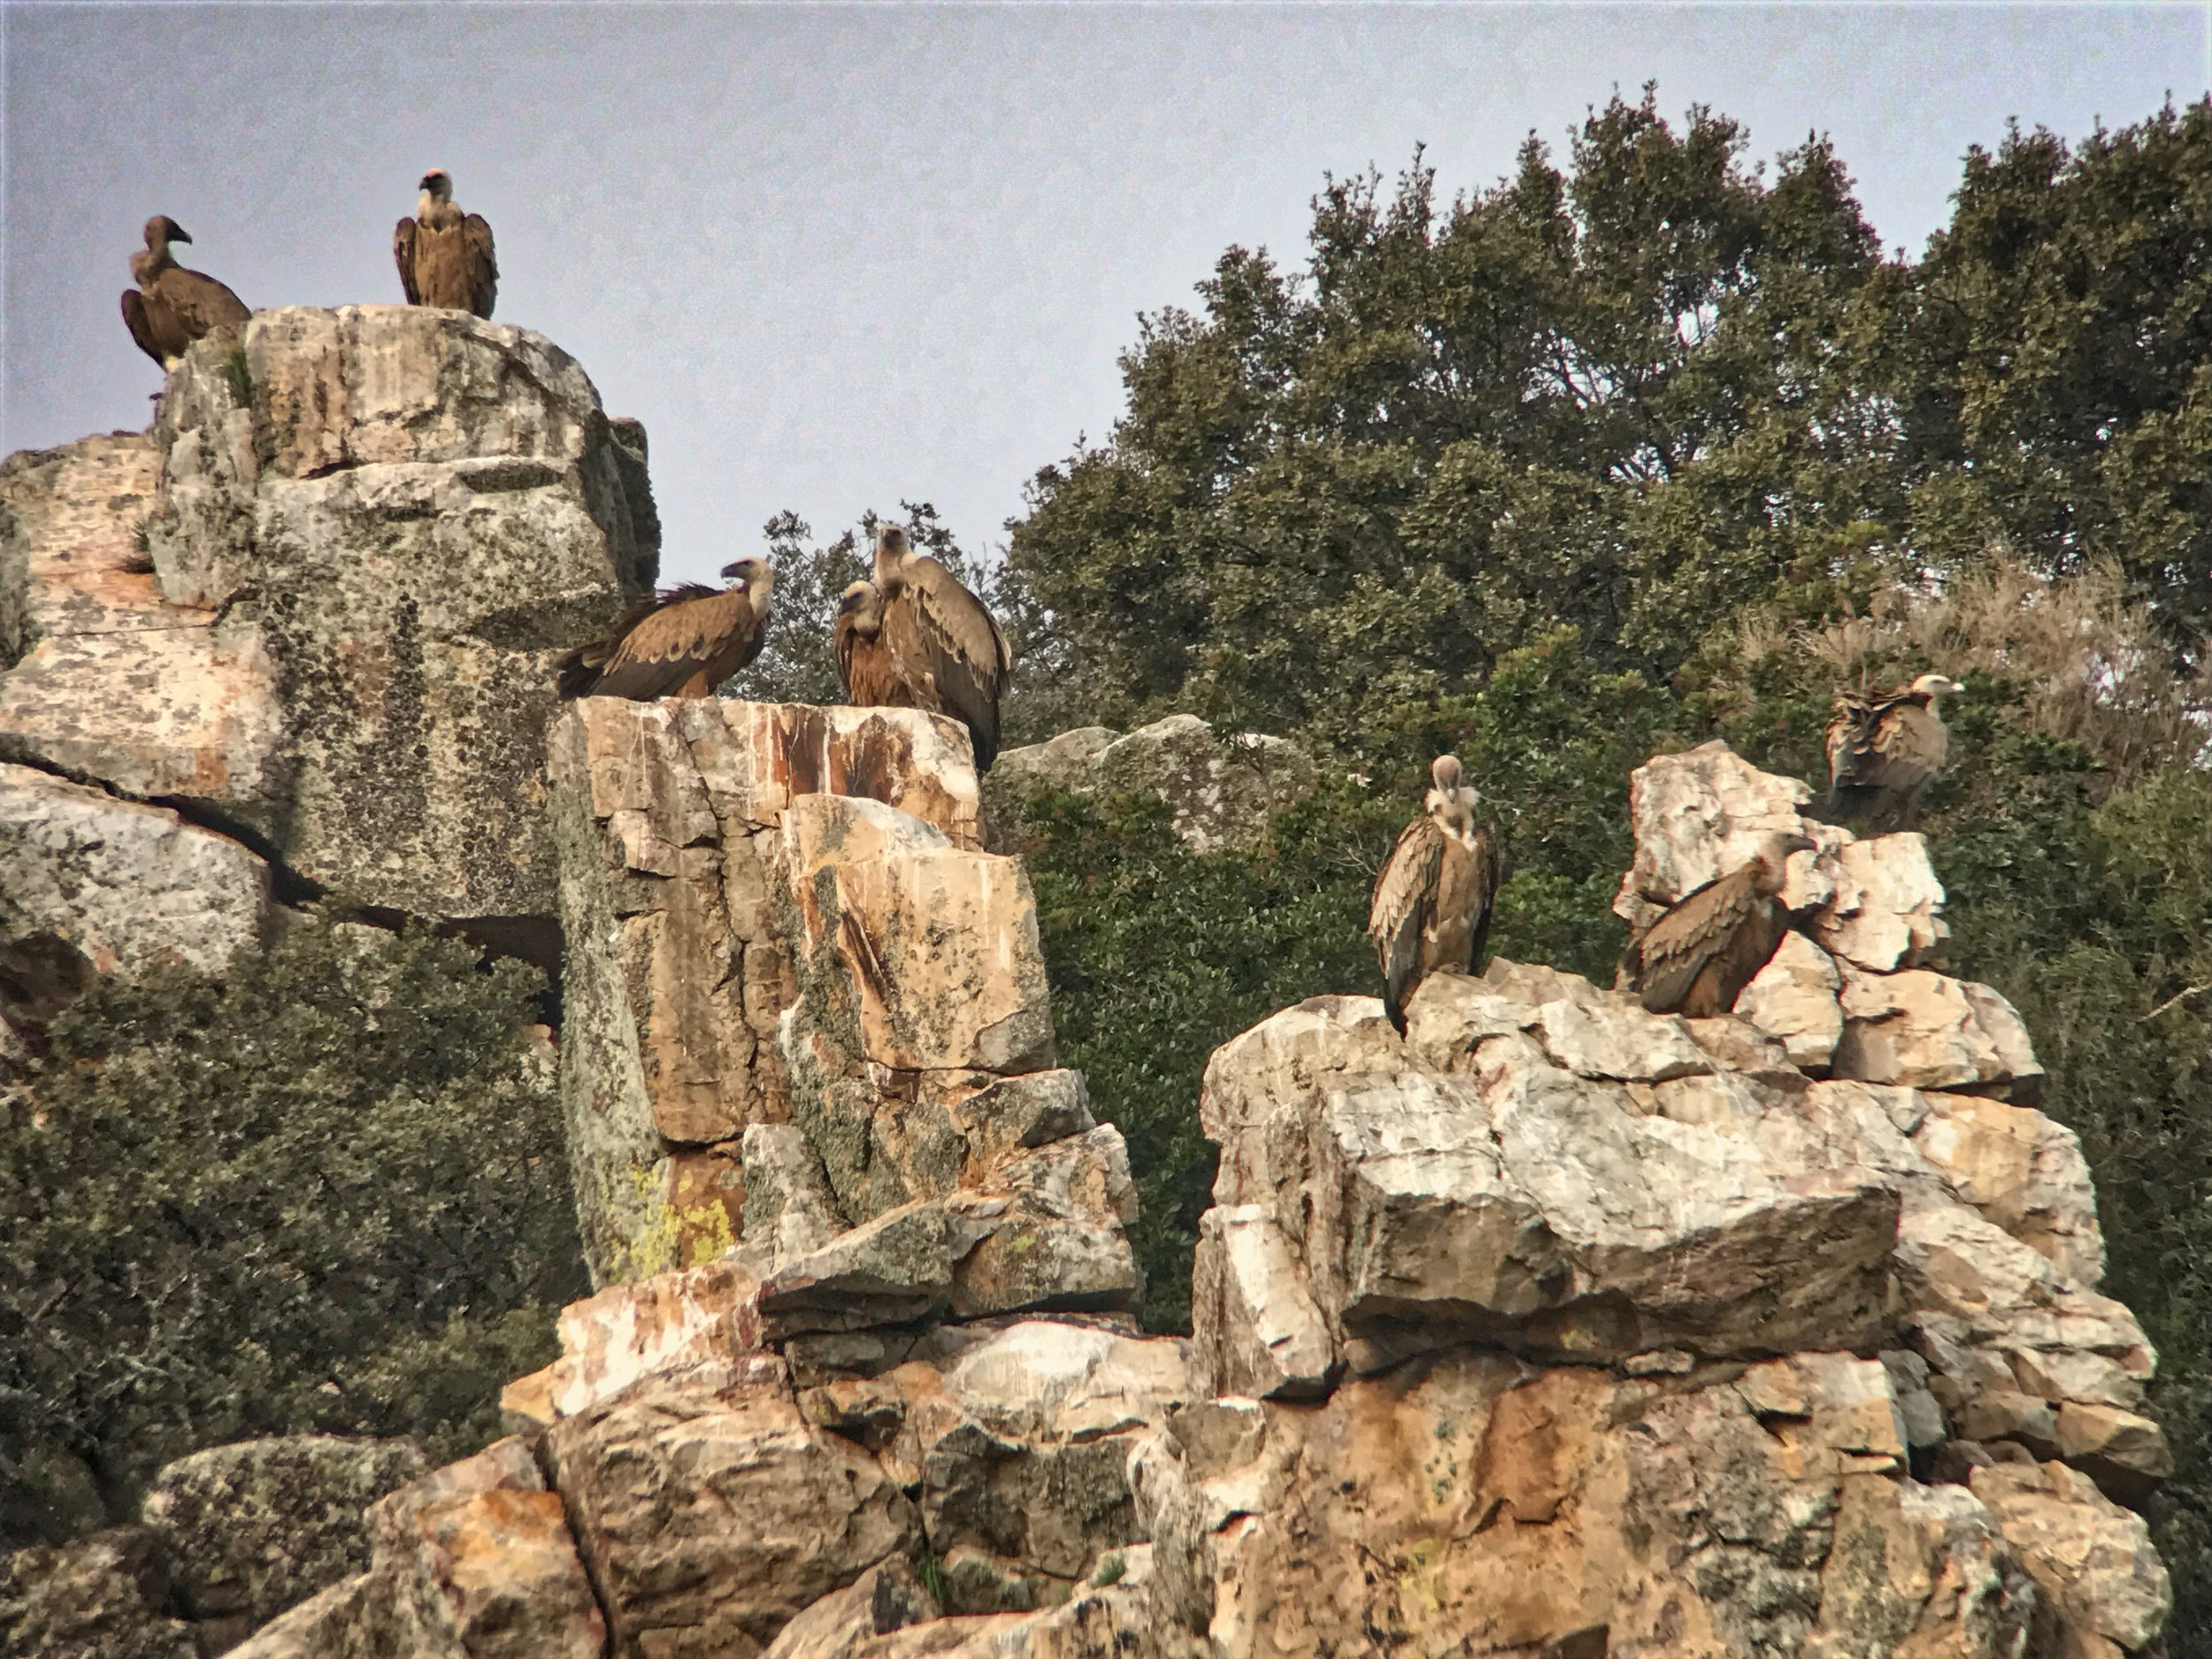 Griffon vultures roosting on one of the may rocky cliff faces in Monfragüe.